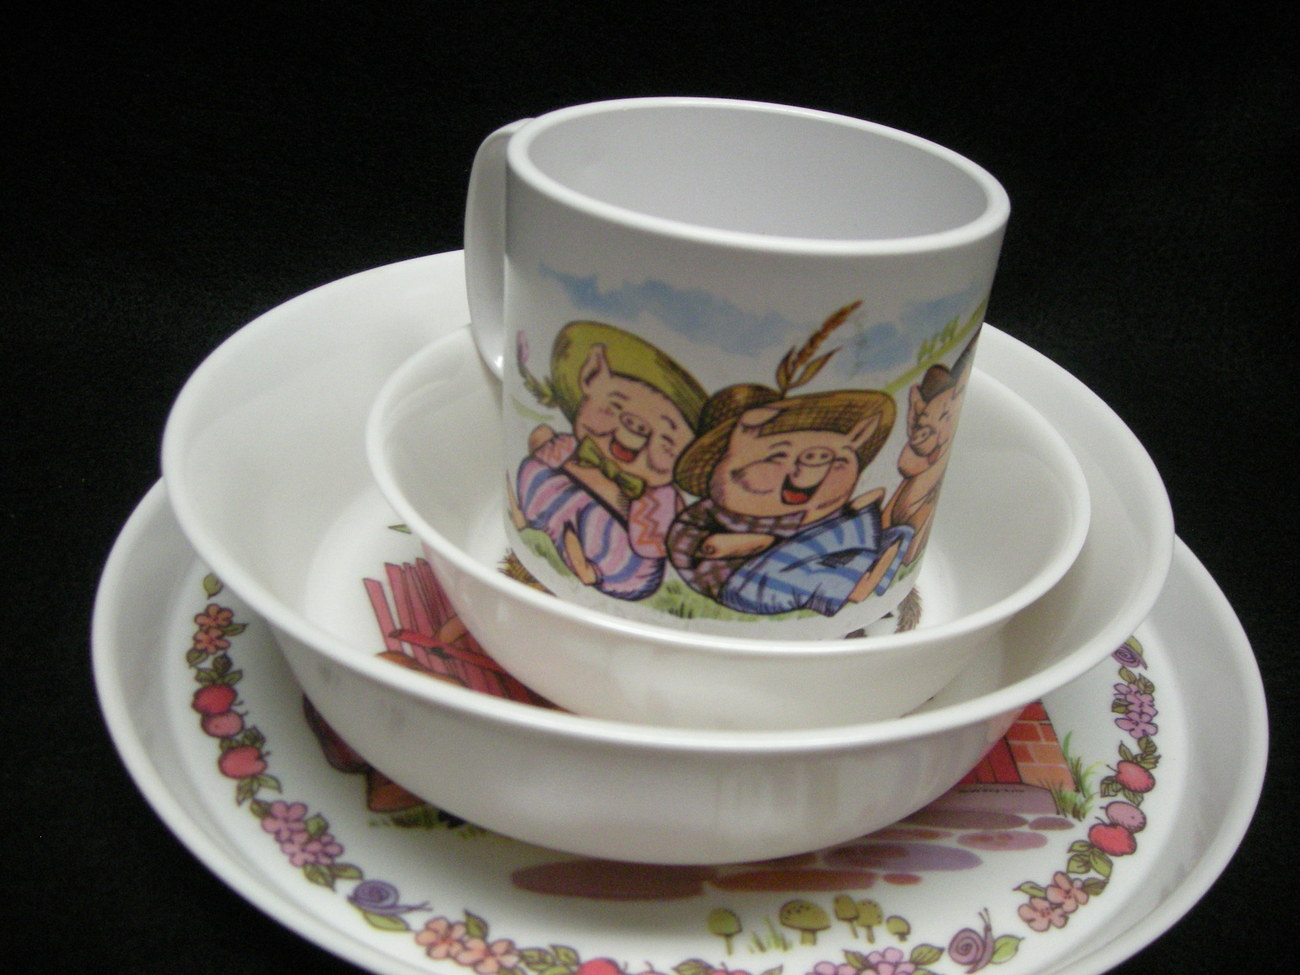 Childs 4pc Dinner Set.  Three Little Pigs By Oneida Ware. New.